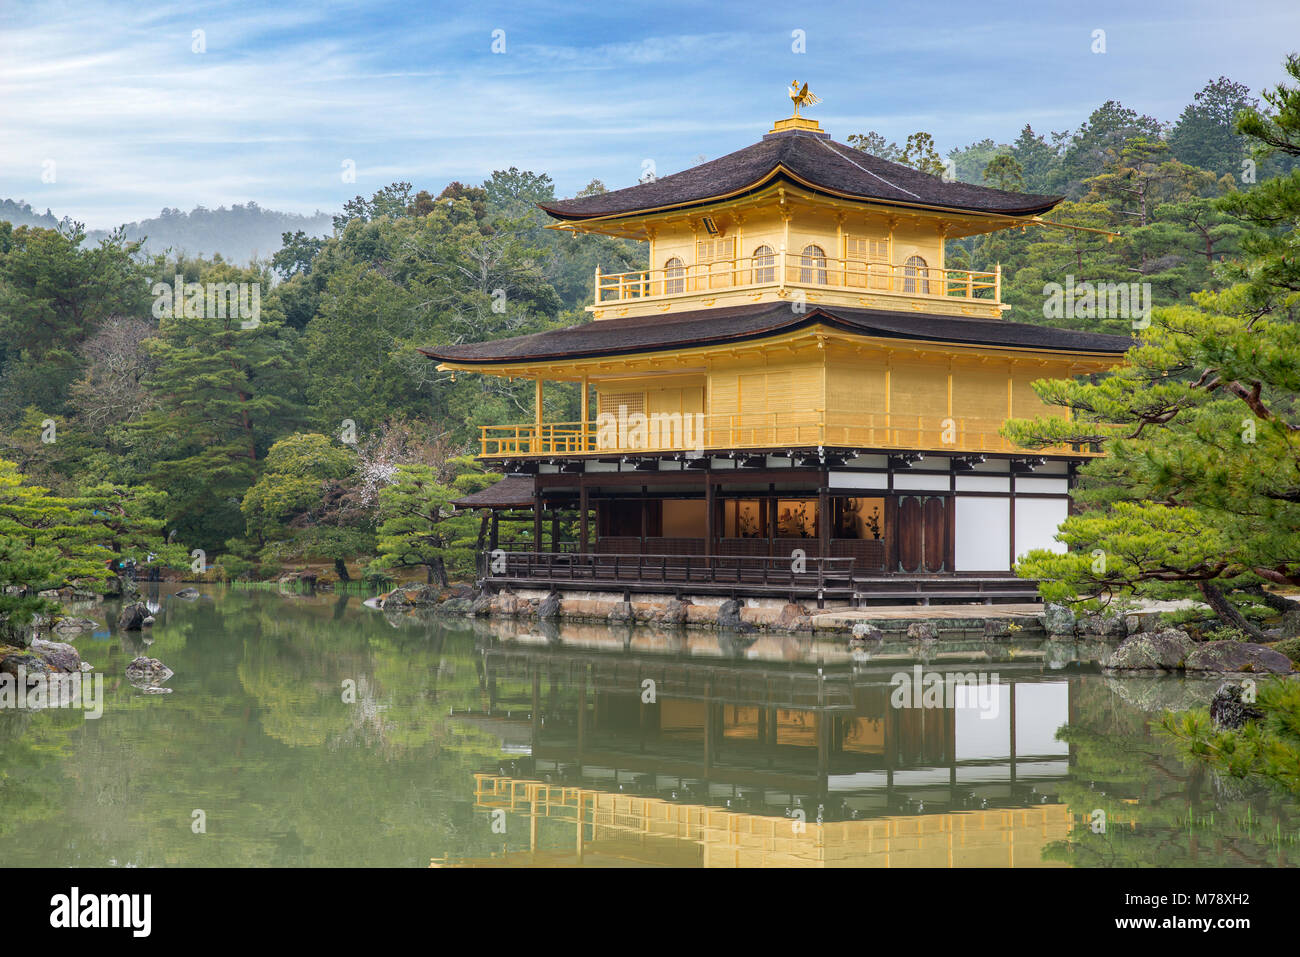 Kinkakuji Temple (The Golden Pavilion) in Kyoto, Japan - Stock Image